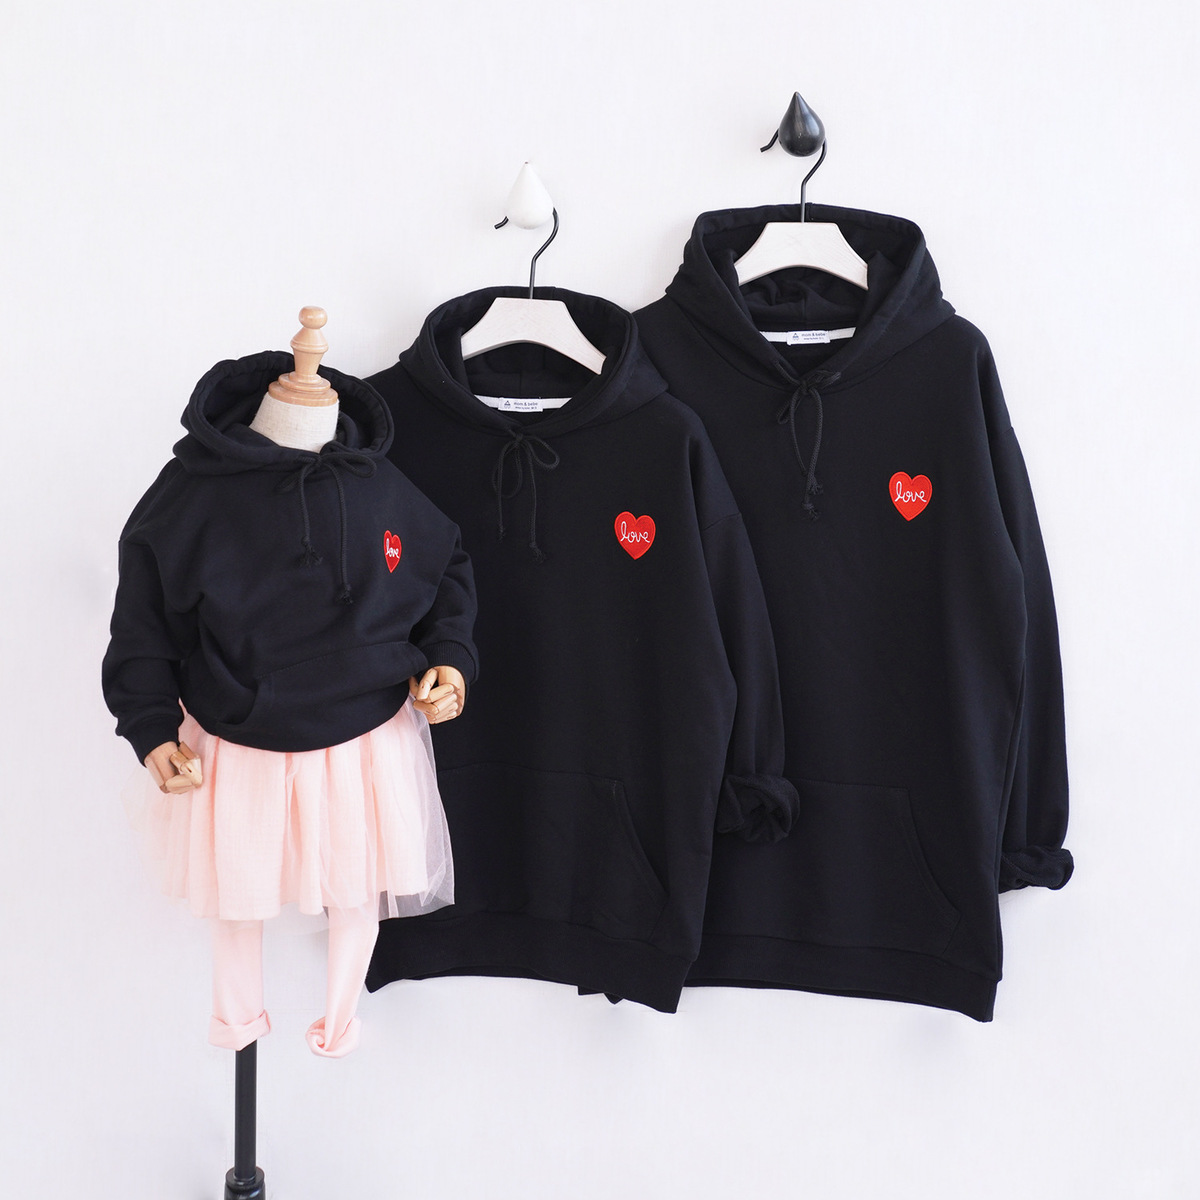 2018 Spring Autumn New Children's Clothing Korean Version Of The Family Fitted Embroidered Love Hooded Family Matching Clothes цена